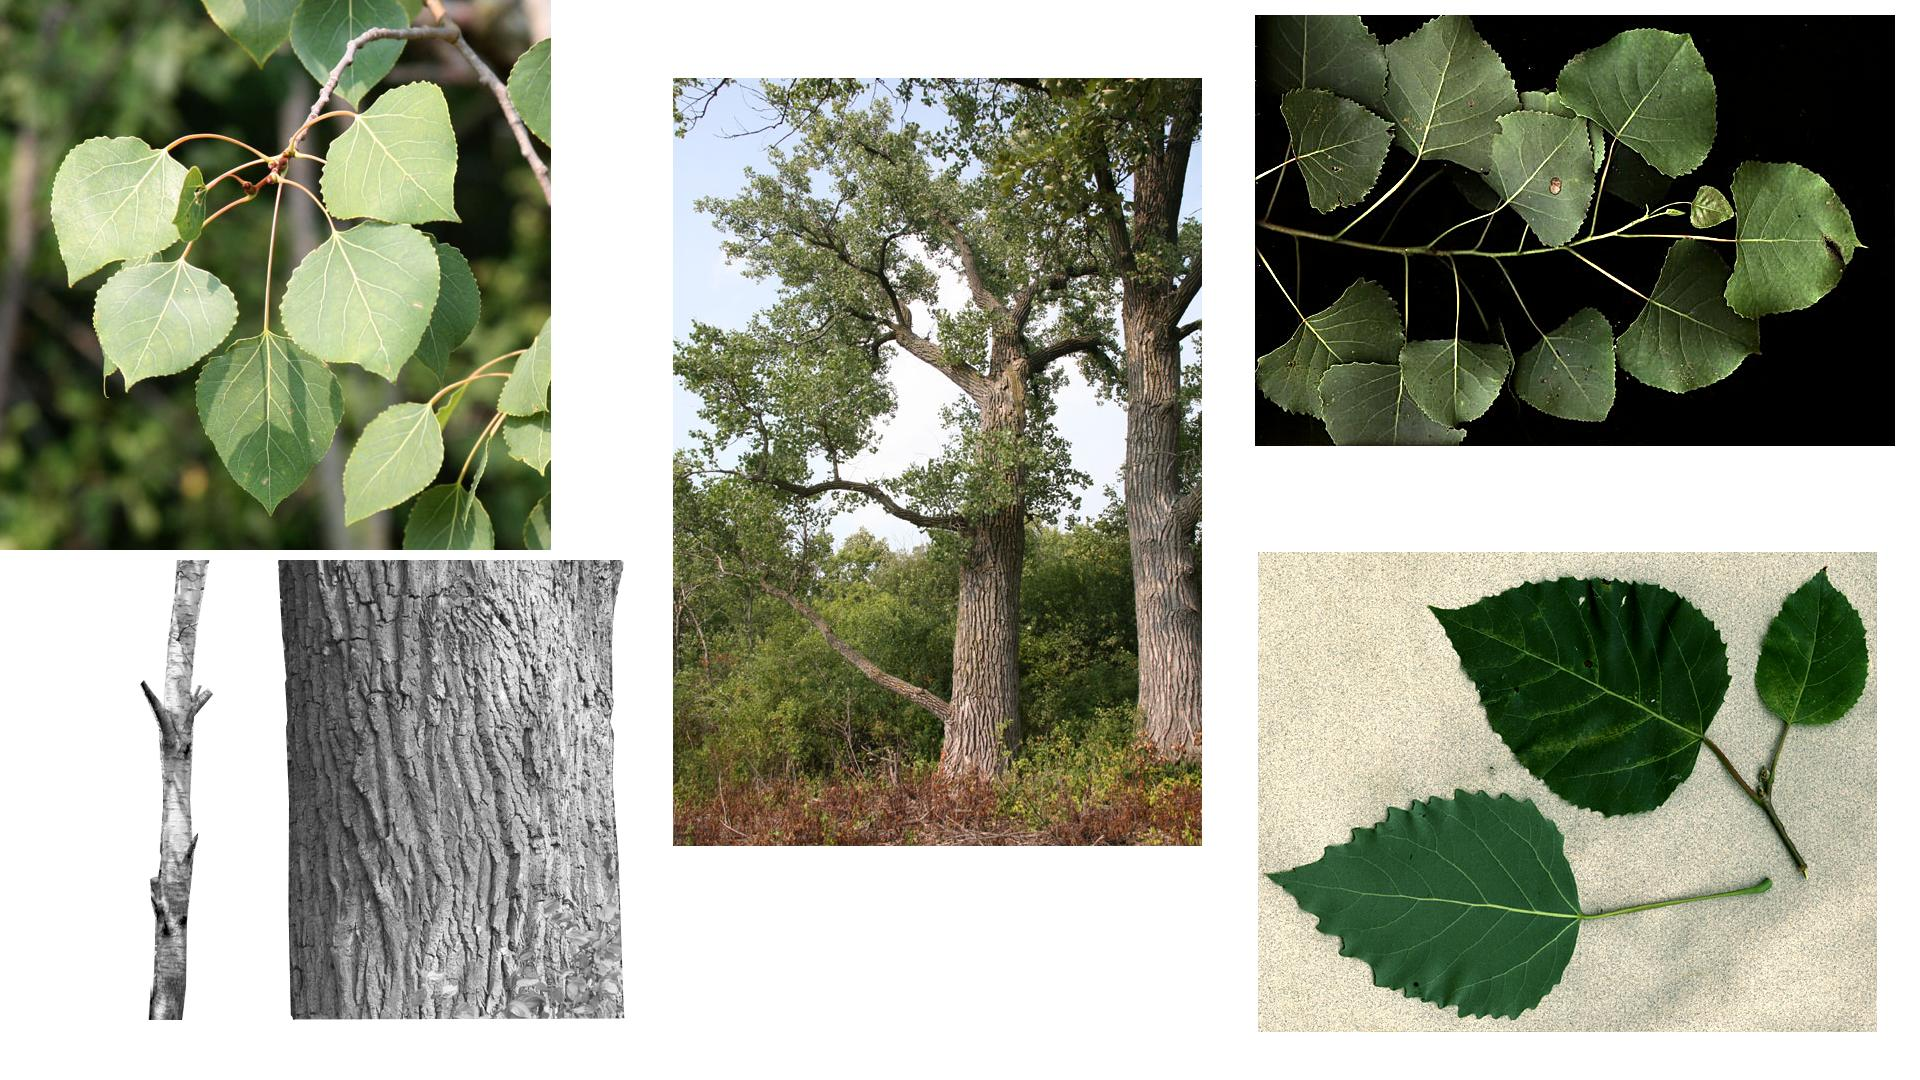 Populus composite : 1.  leafy branch of P. tremuloides, 2. large tree, 3. leafy branch and 4. bark of of P. deltoides;  5. leafy branch of P. grandidentata